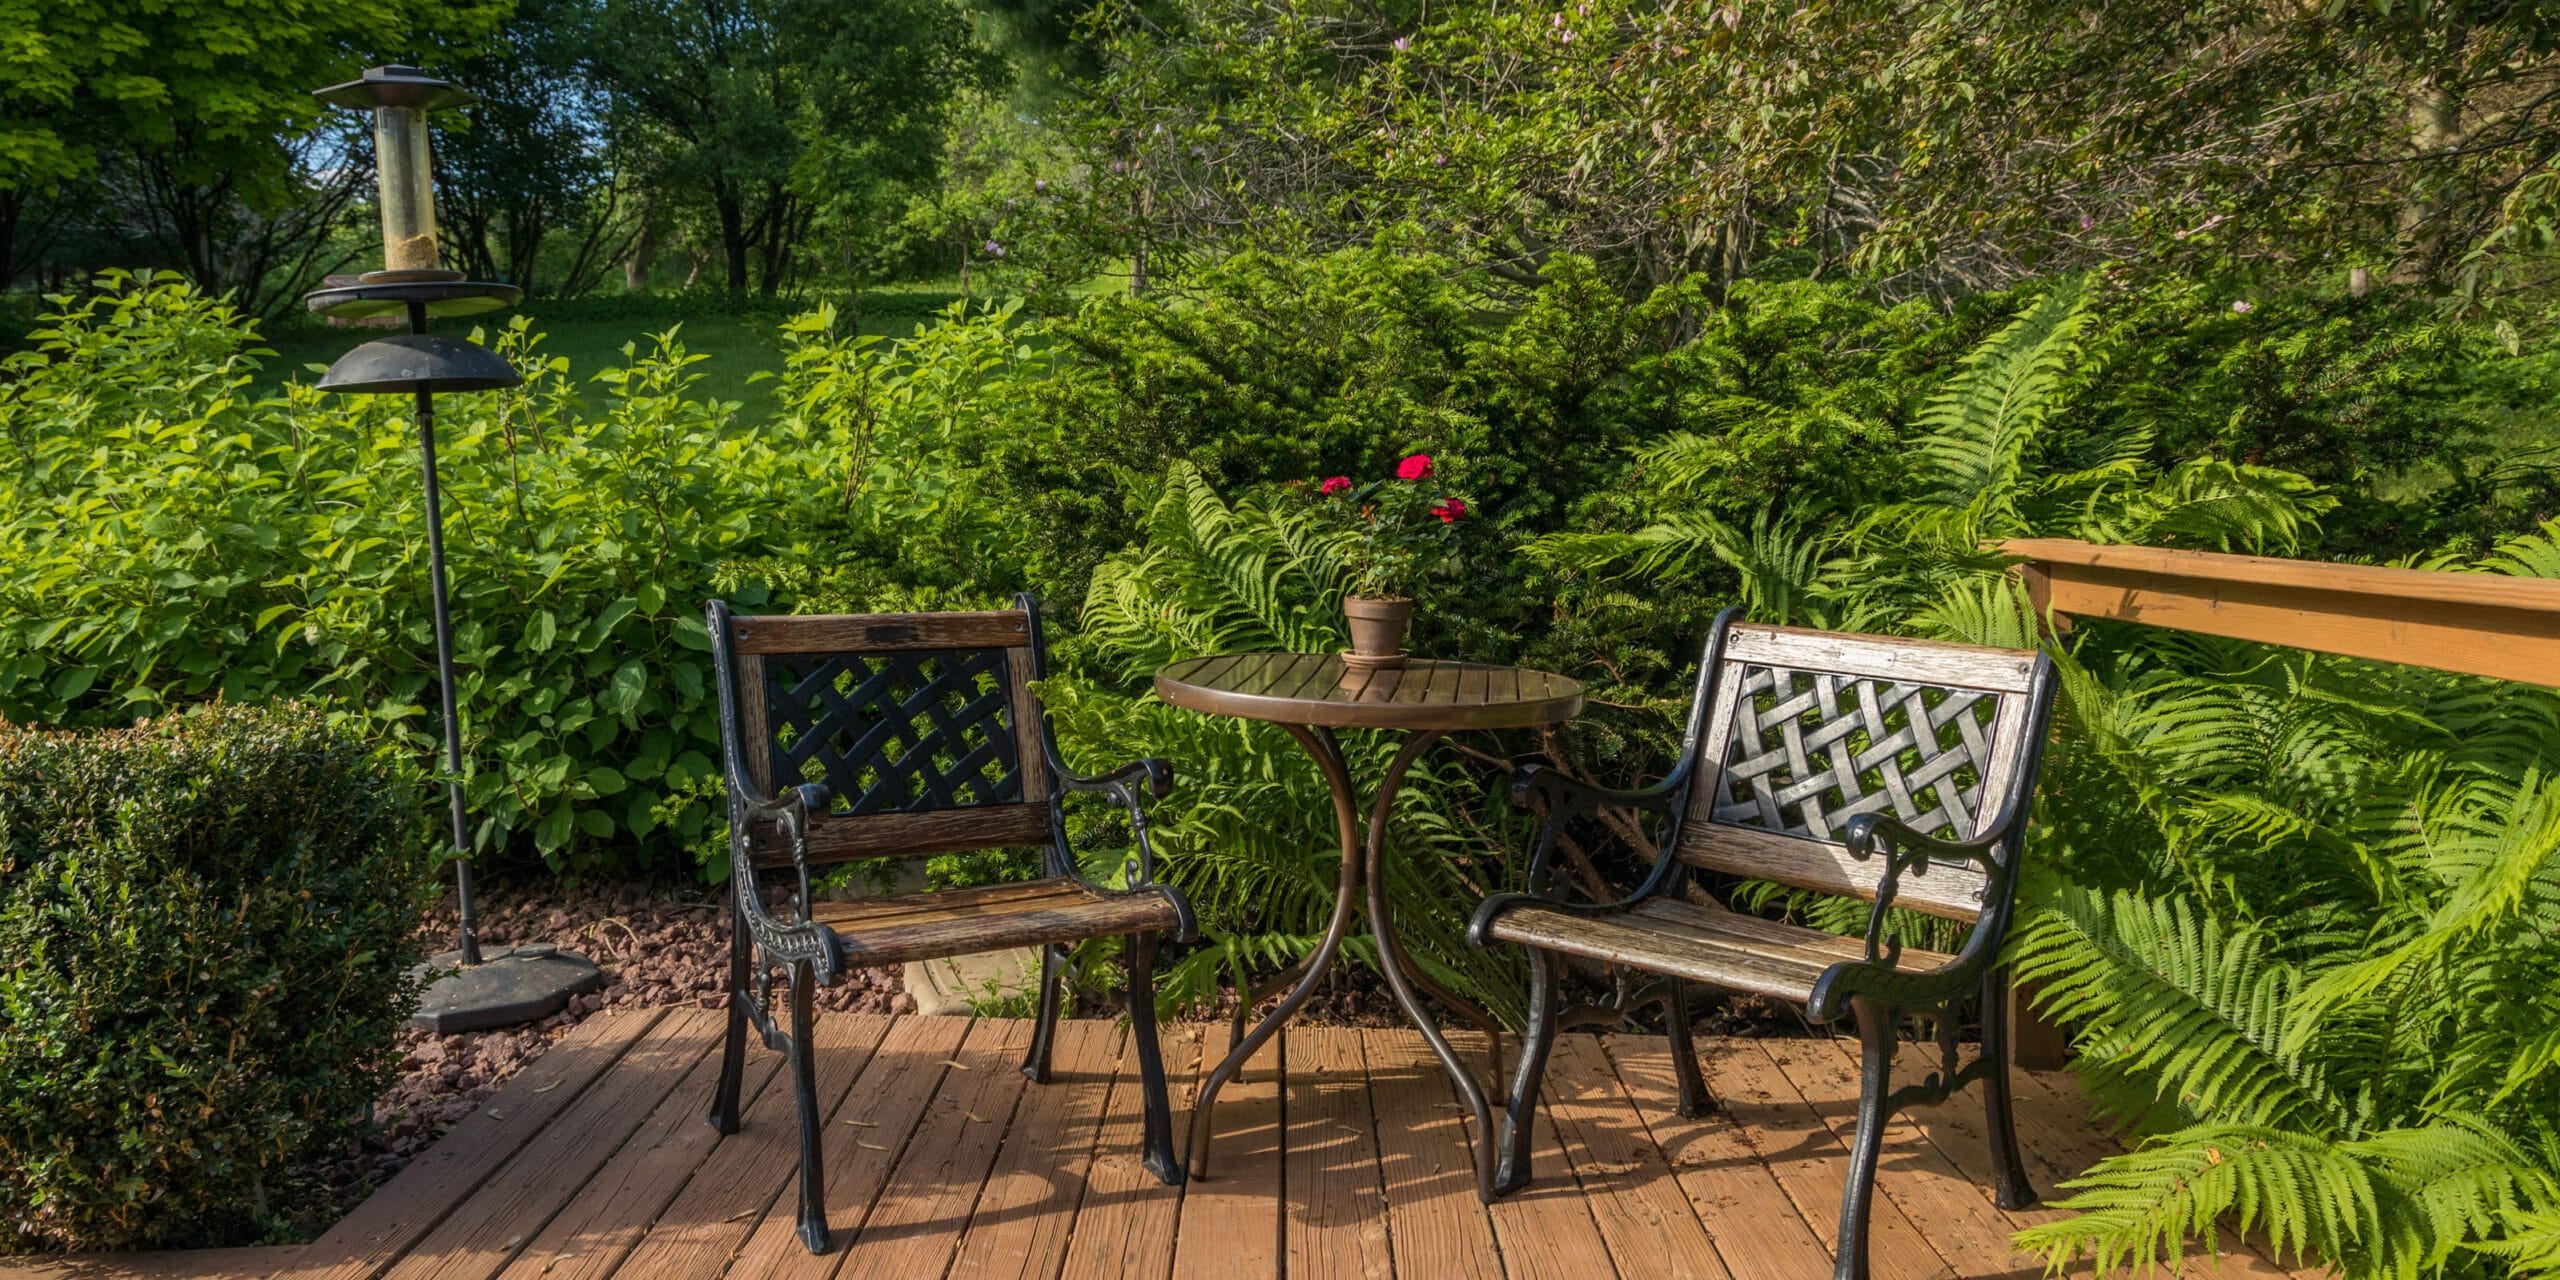 2 outdoor chairs and table in front of bushes